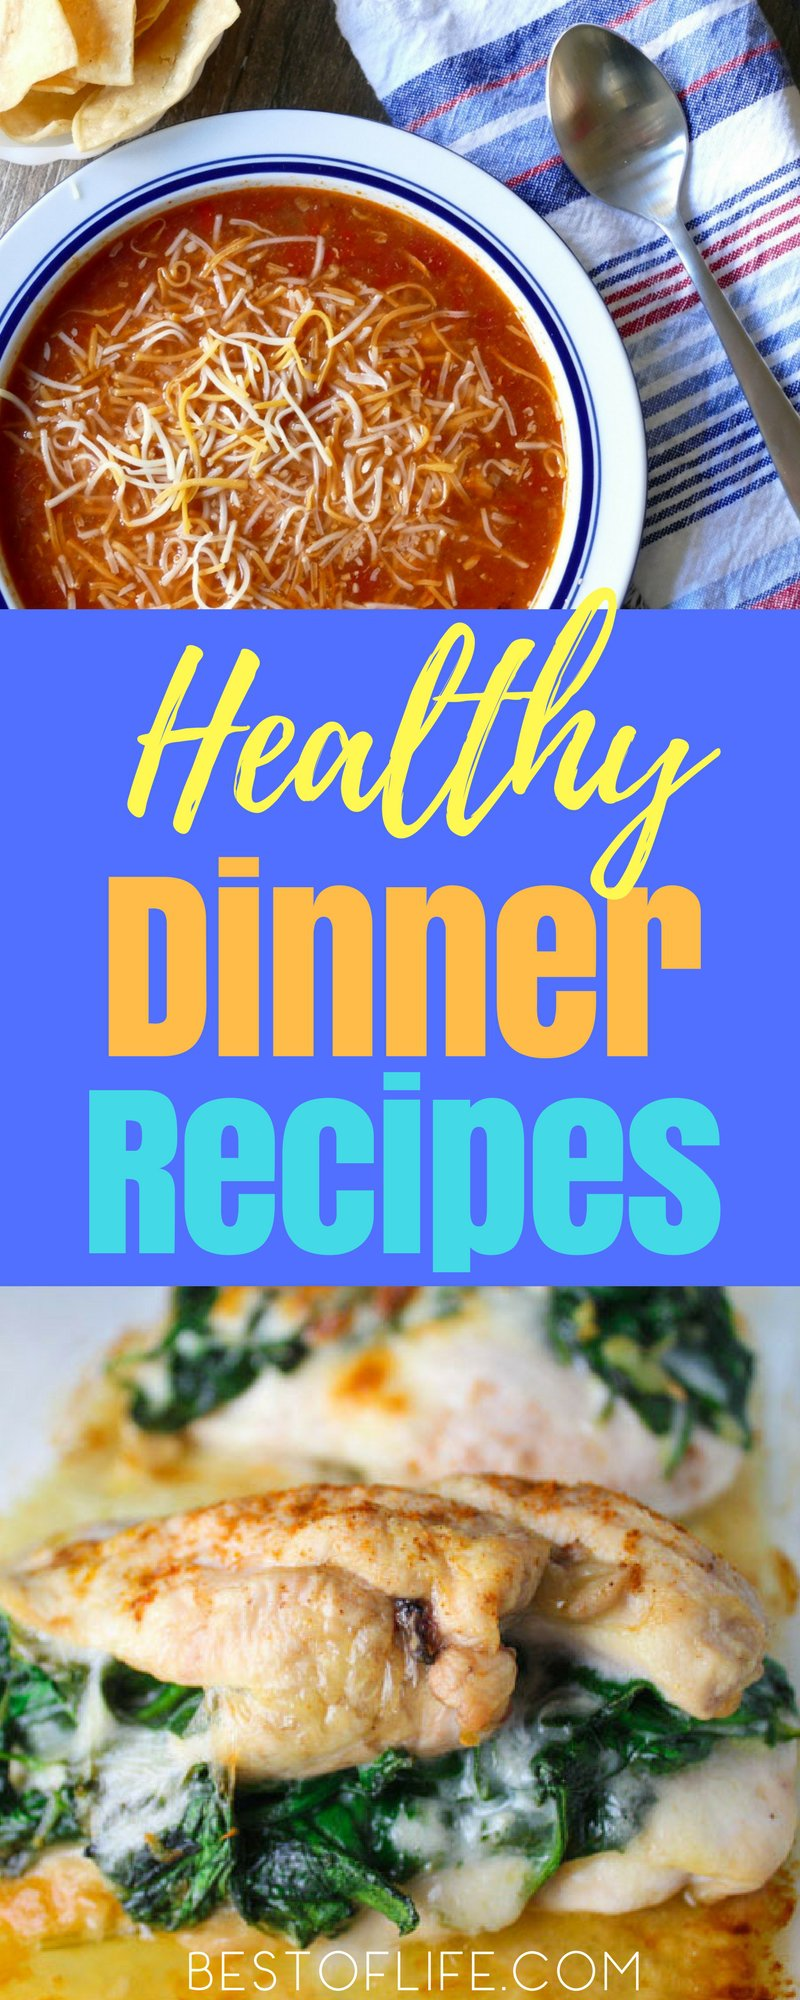 The best healthy dinner recipes will not only make cooking easier and tastier, they will also help make weight loss easier. Best Dinner Recipes for Weight Loss | Weight Loss Dinner Recipes #healthyrecipes #weightloss #weightlossrecipes #dinnerrecipes #easyrecipes